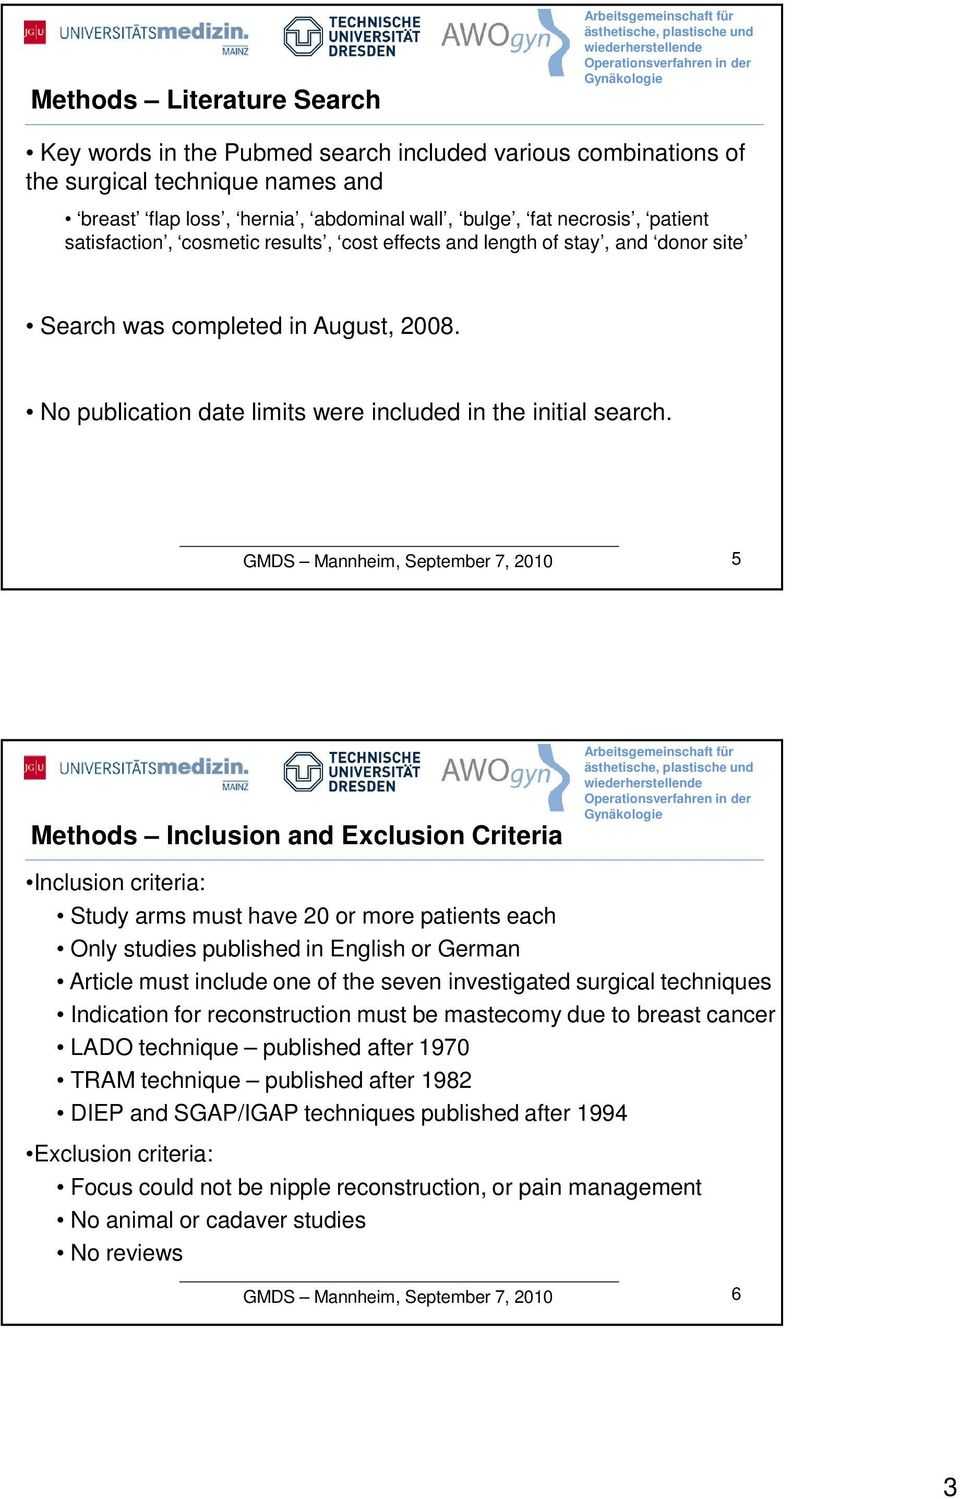 5 Methods Inclusion and Exclusion Criteria Inclusion criteria: Study arms must have 20 or more patients each Only studies published in English or German Article must include one of the seven